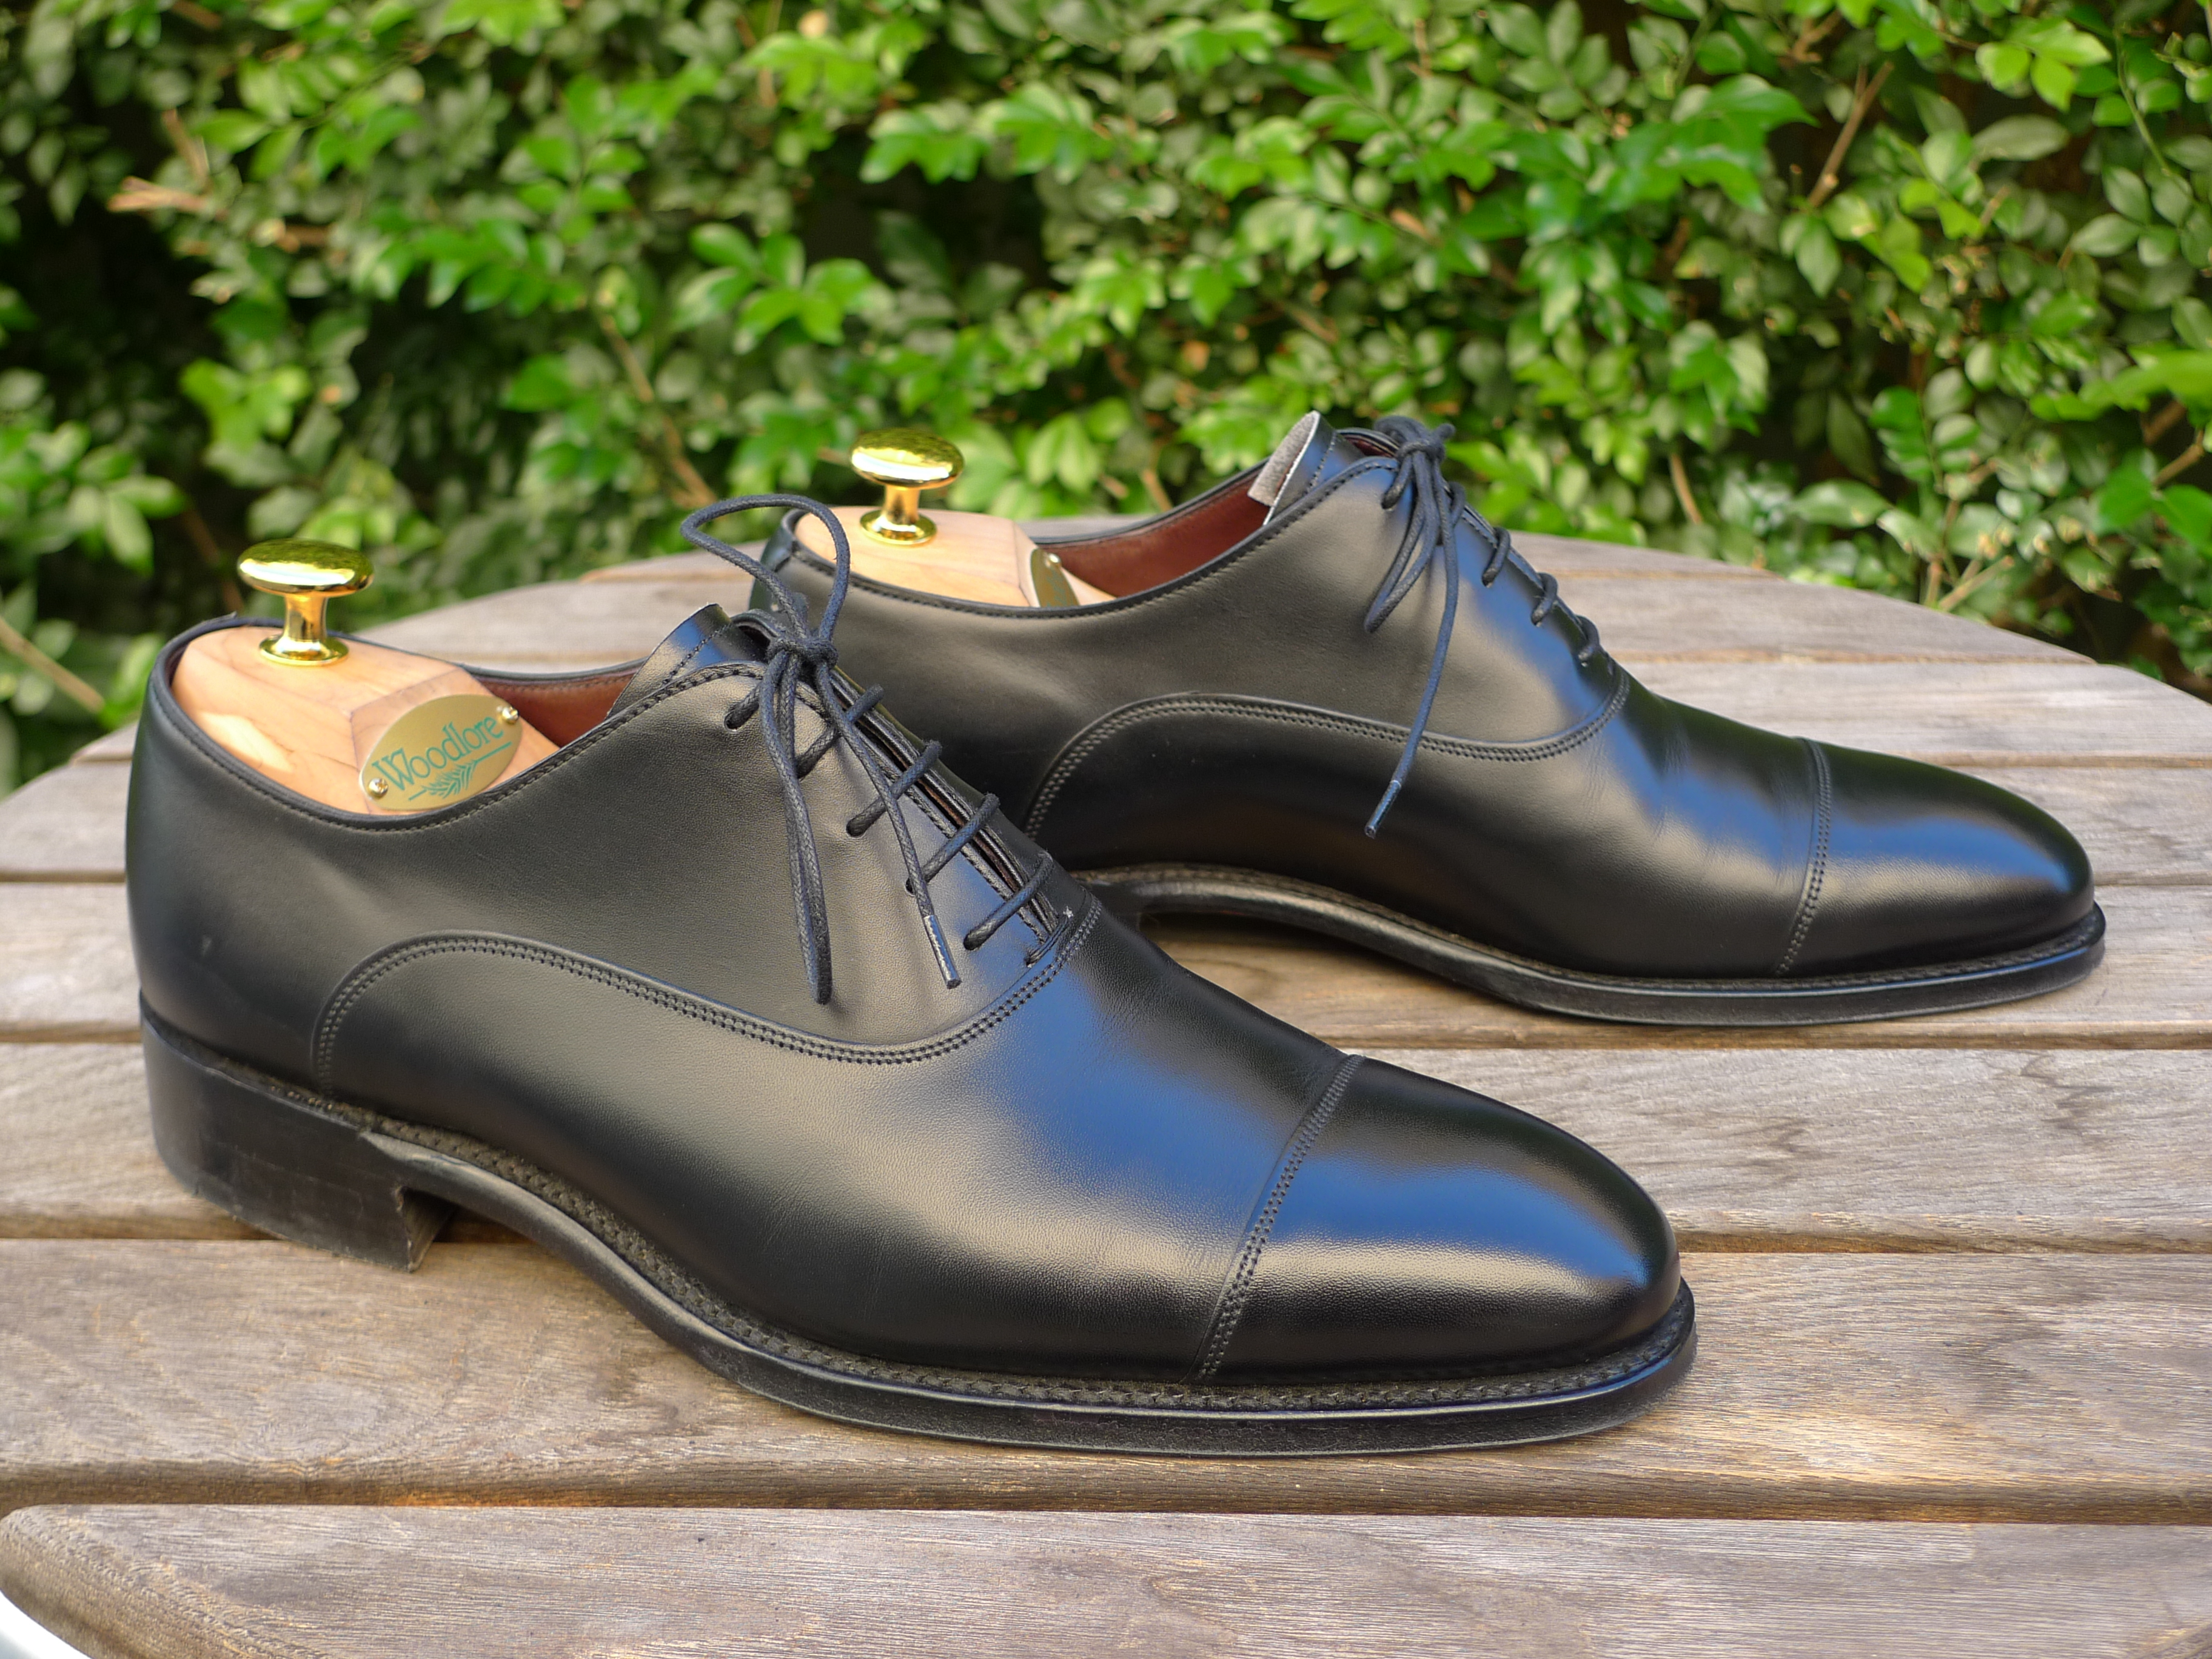 4ce6f9d48a4b My Cheaney Imperial Buckingham Oxford in Black, 208 last, size UK 6 Fitting  F Purchased from Shoehealer, RRP £375 ext. VAT